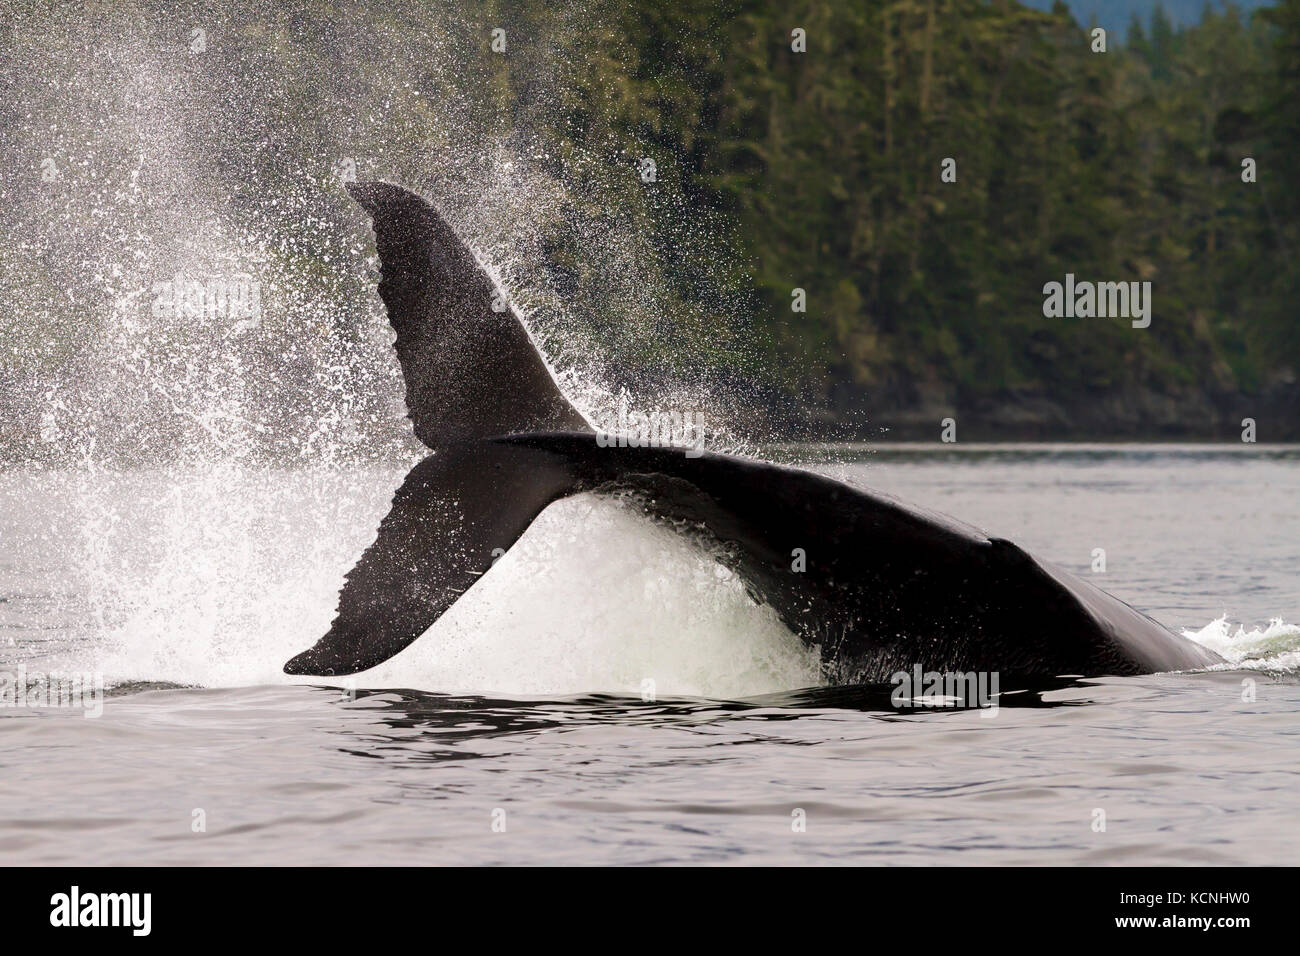 A large male humpback whale hitting his large tail fluke onto the water, aka tail slapping, in Knight Inlet, British - Stock Image